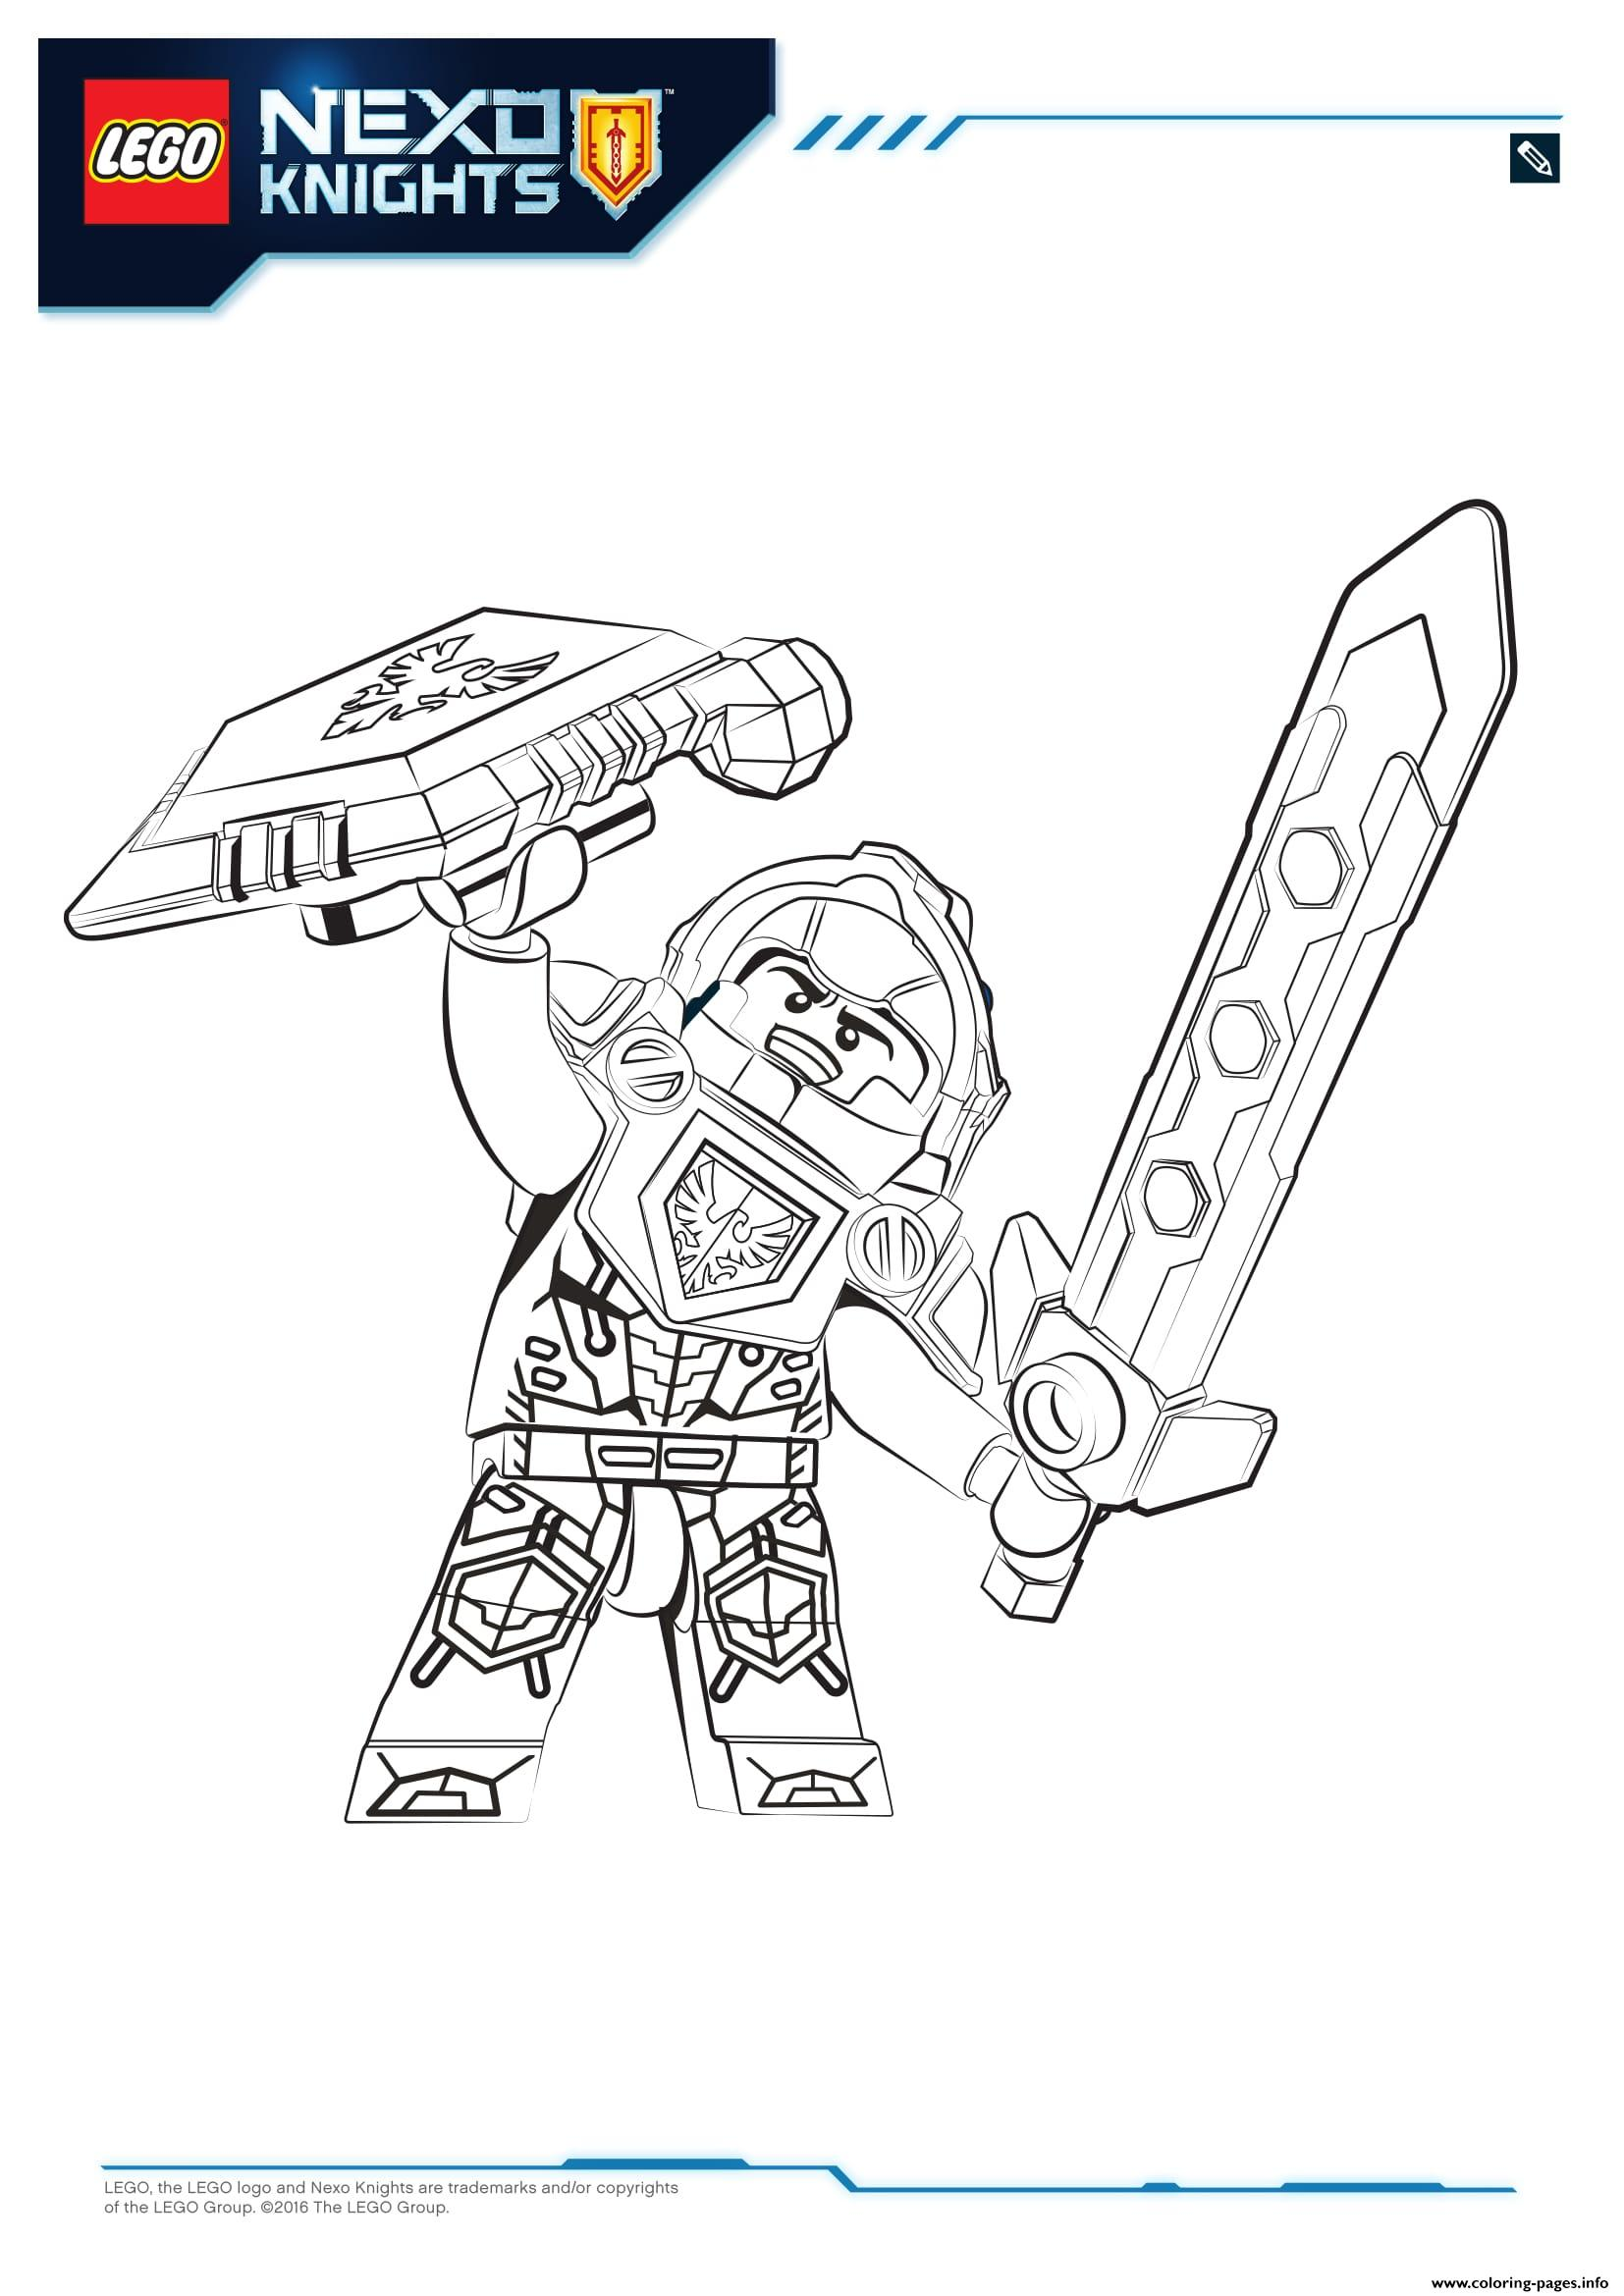 Lego Nexo Knights Clay 1 Coloring Pages Printable